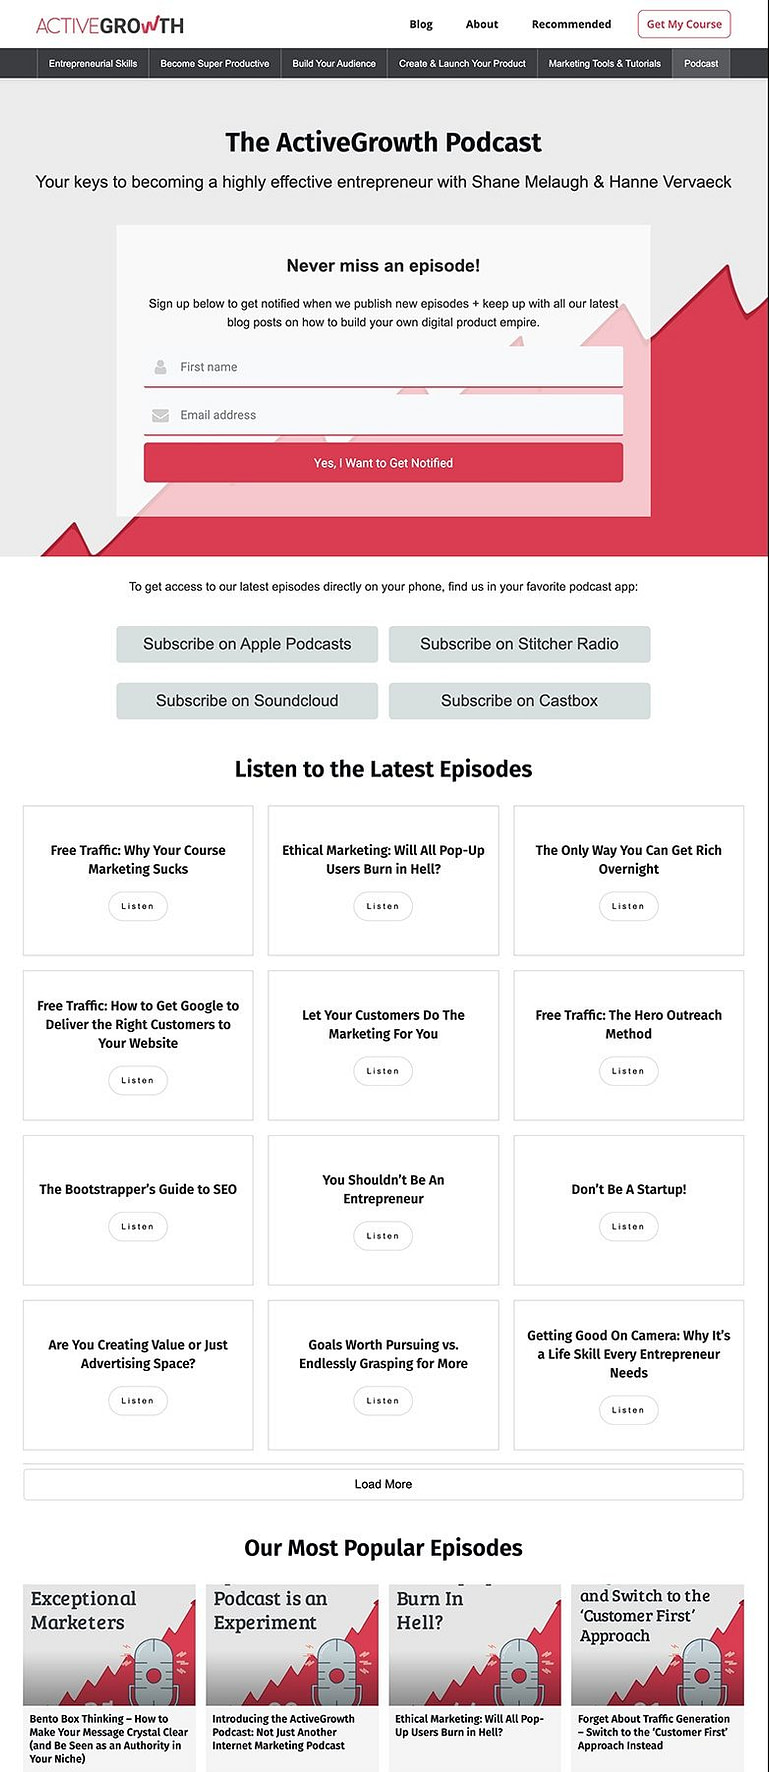 ActiveGrowth podcast silo page